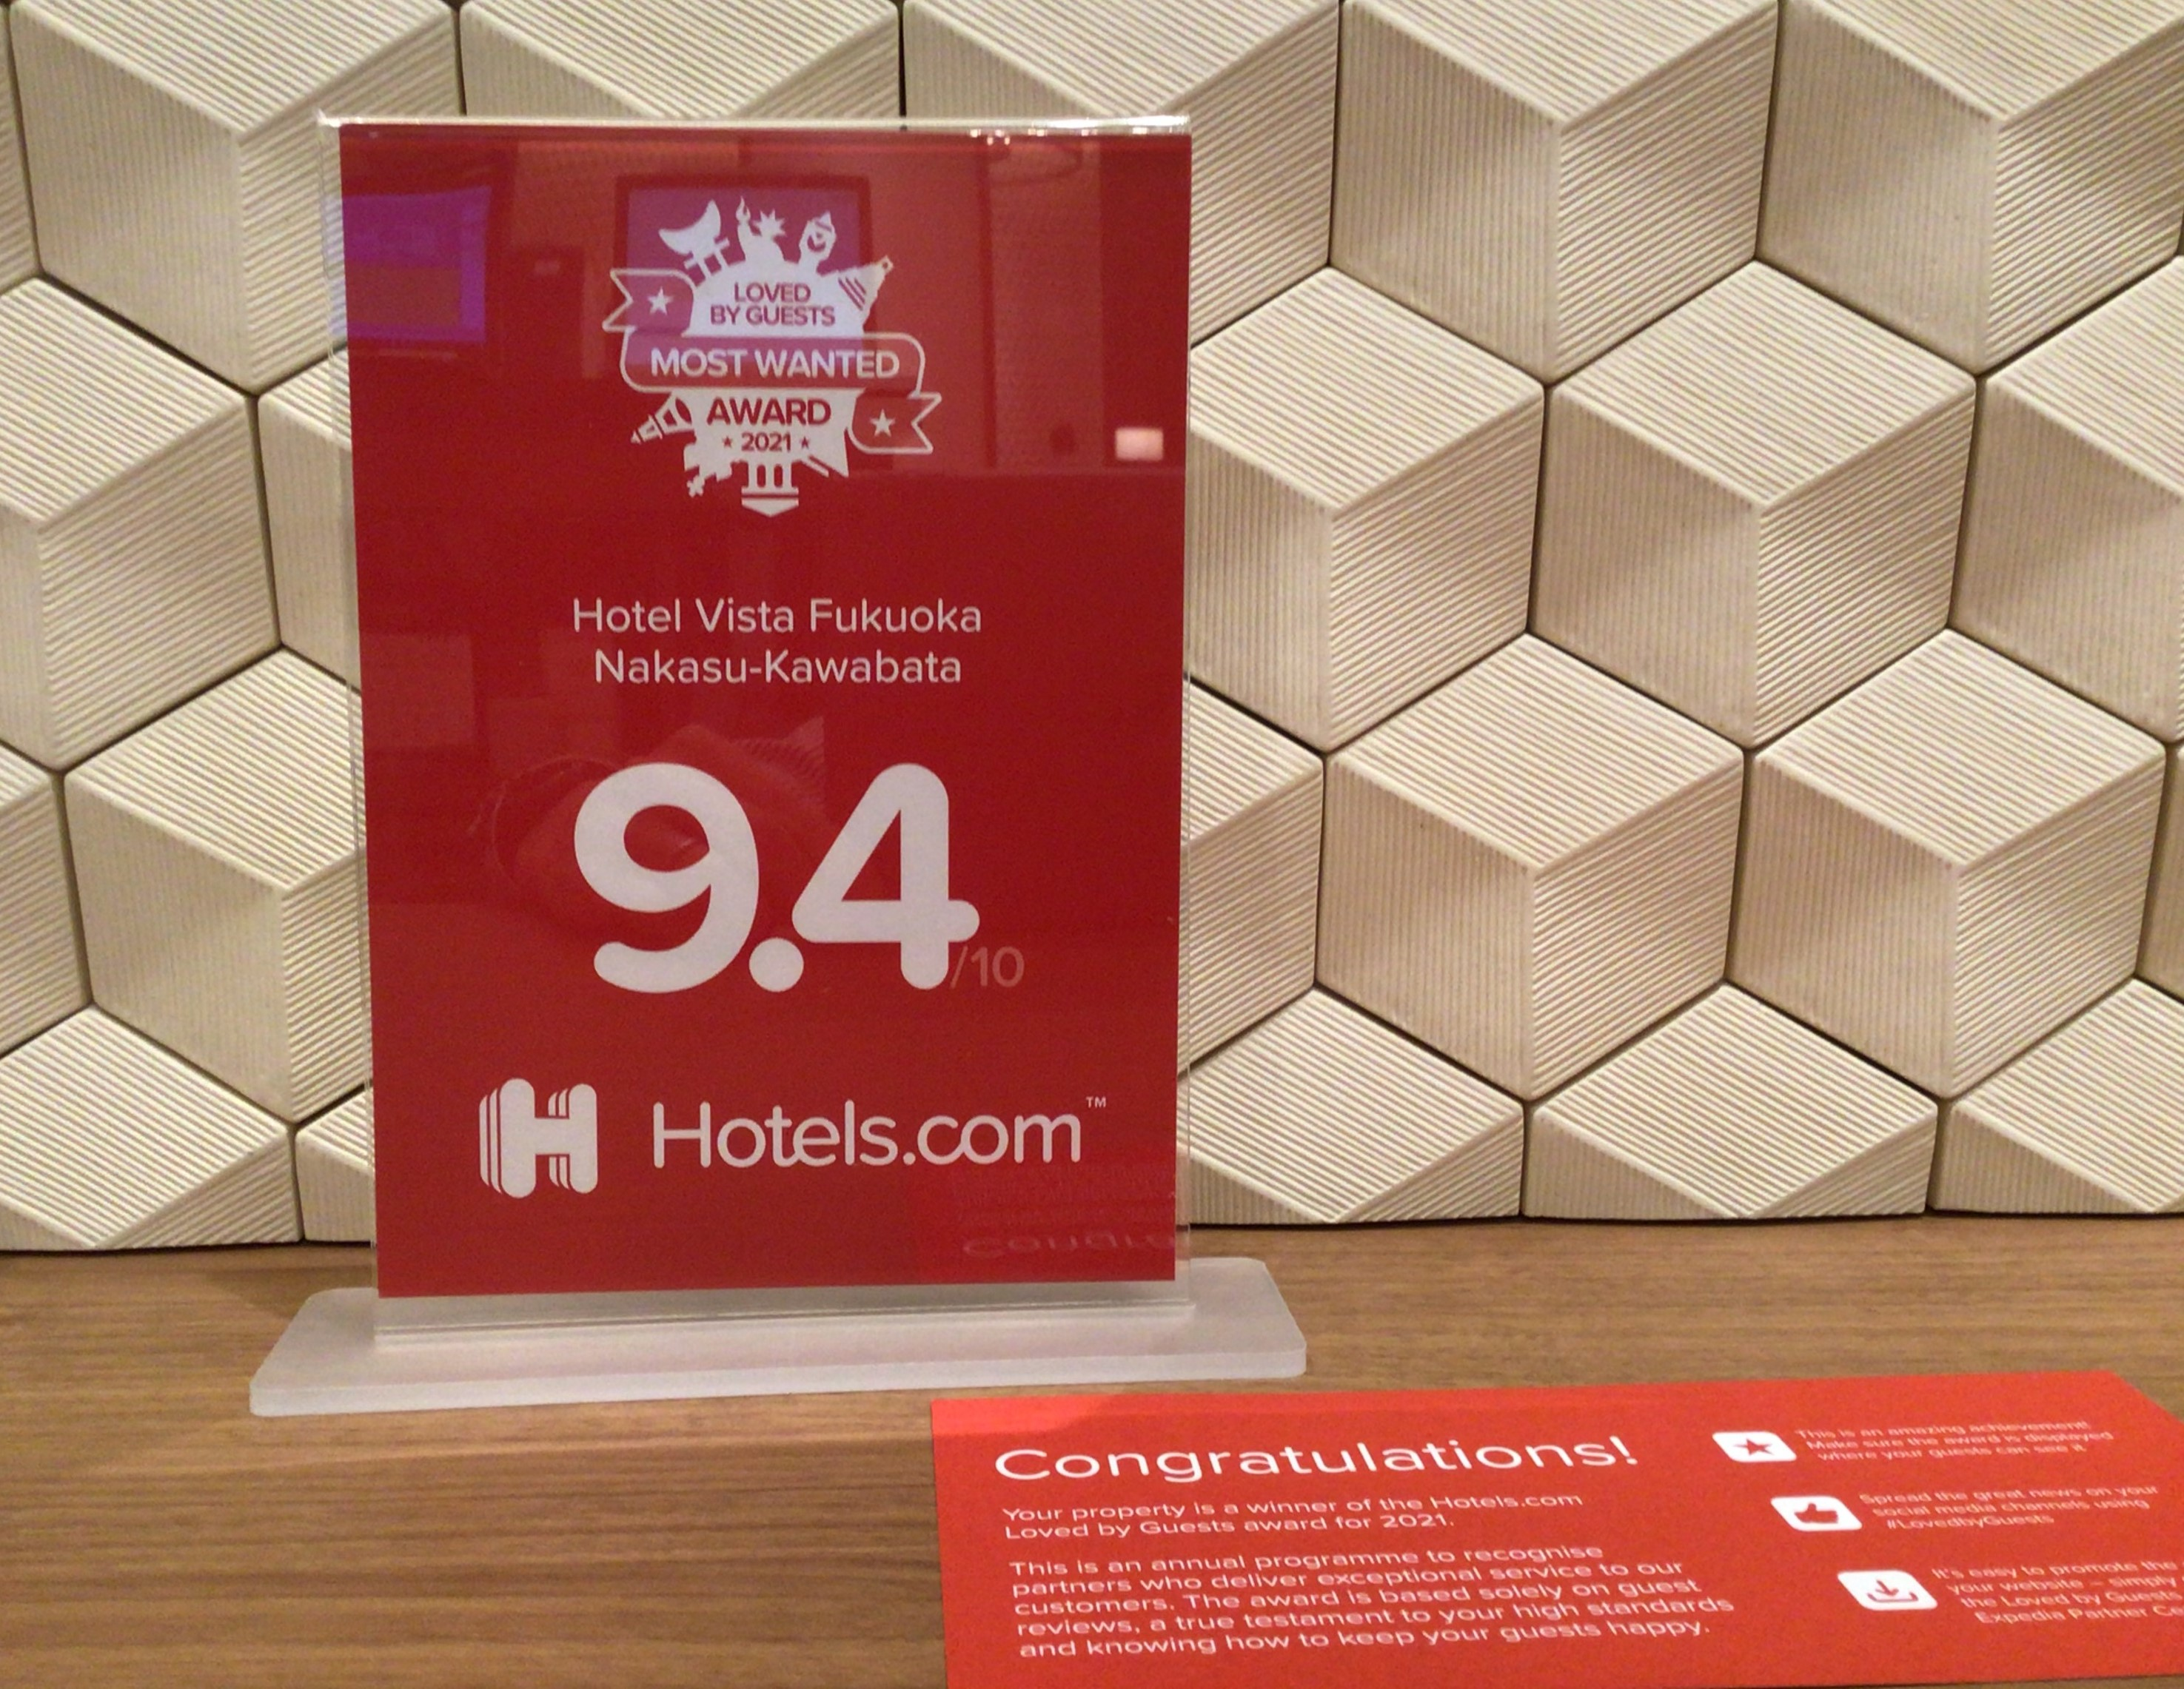 「Hotels.com」 Loved By Guests Award 2021(宿泊者が選ぶ人気宿アワード 2021)を受賞いたしました!